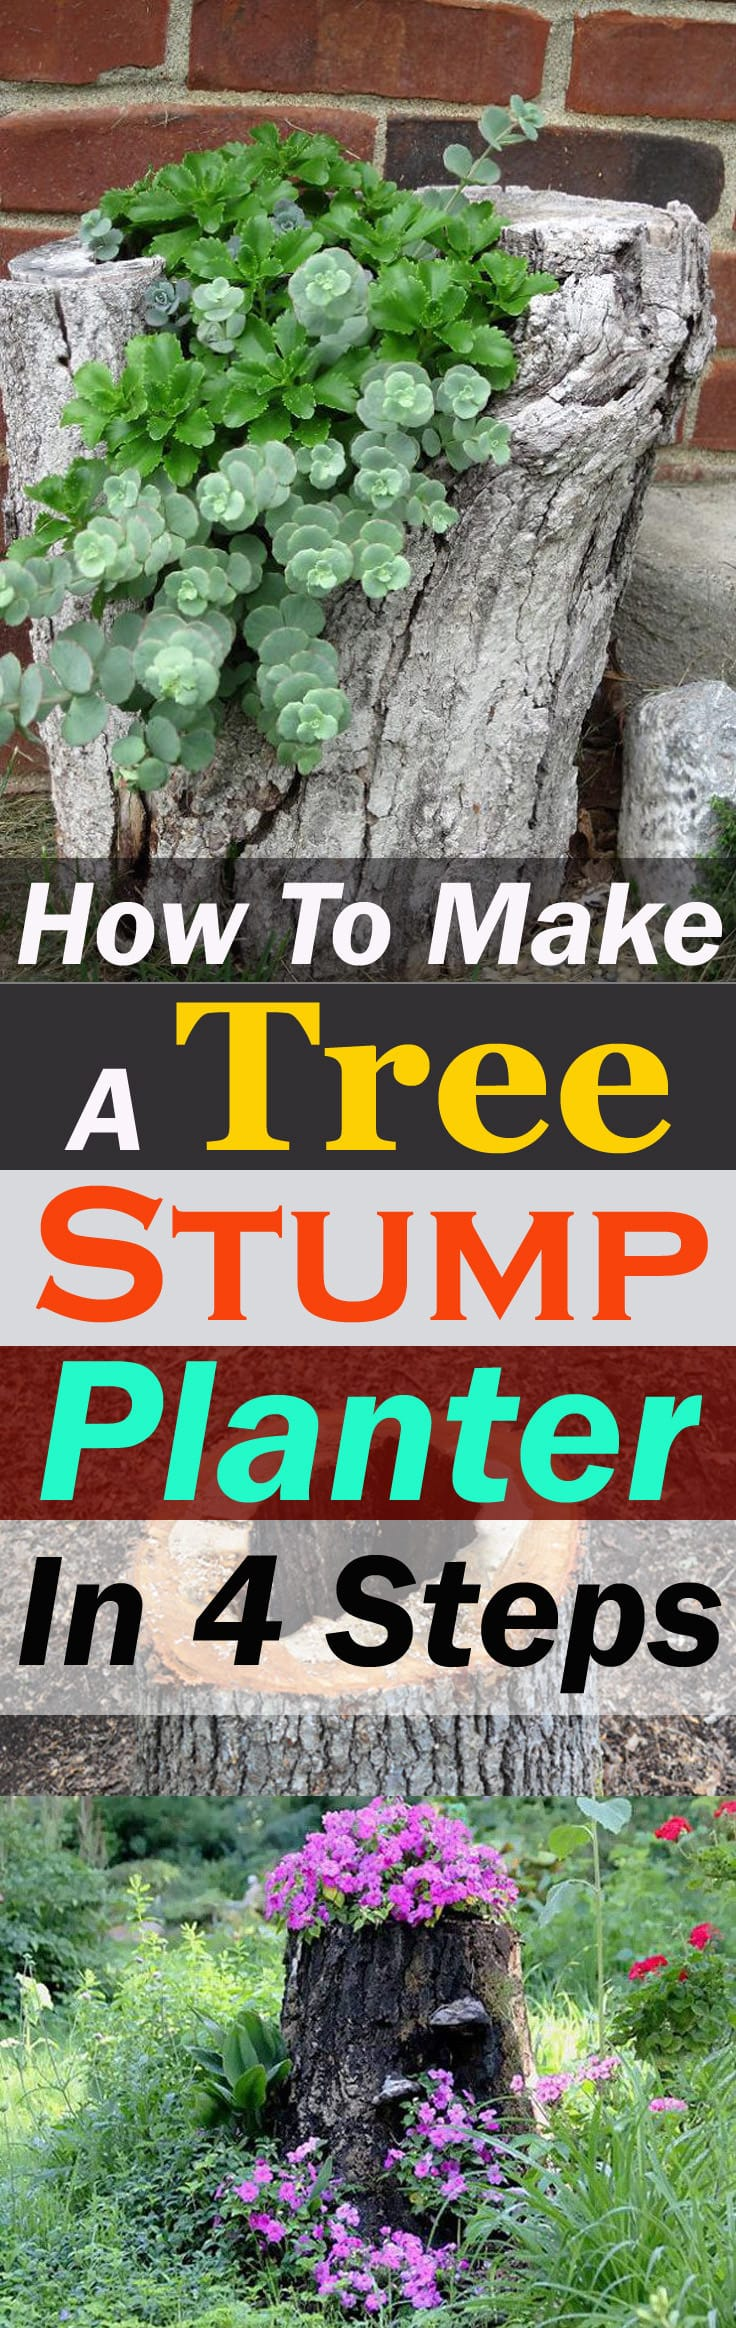 Learn How To Make A Tree Stump Planter And Make Use Of An Old Stump That